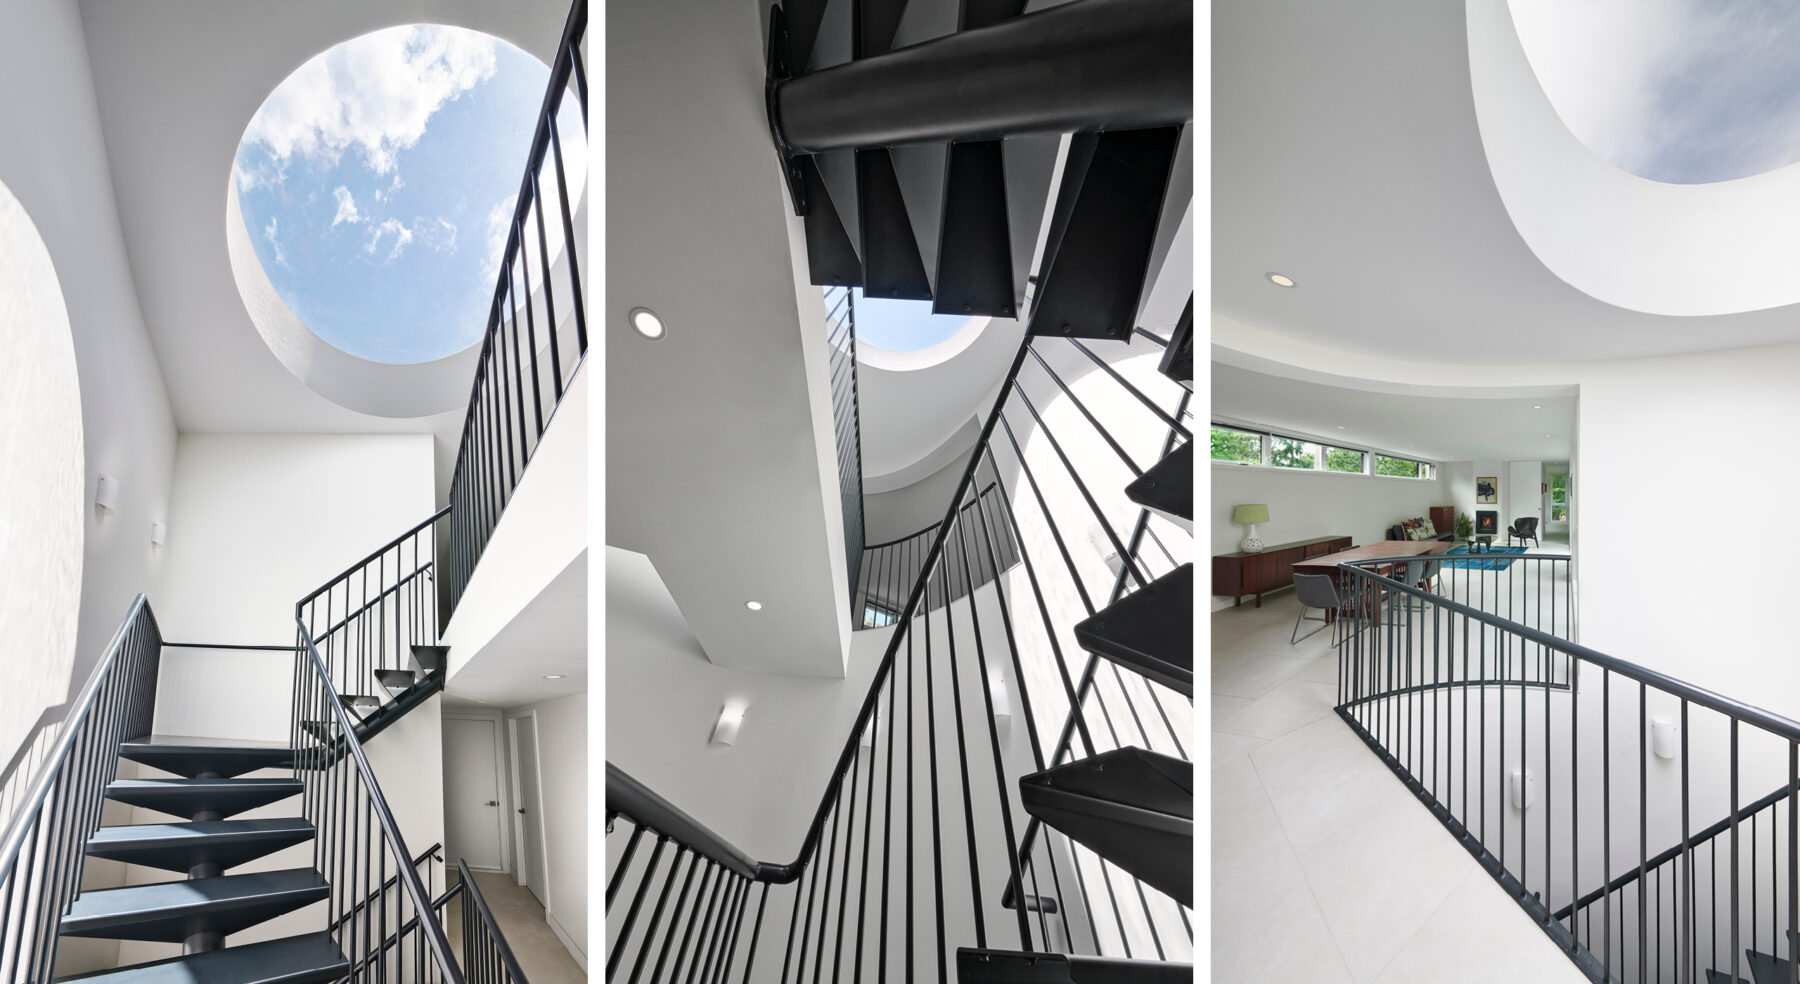 Detailed view of DASH modern home design staircase and skylight